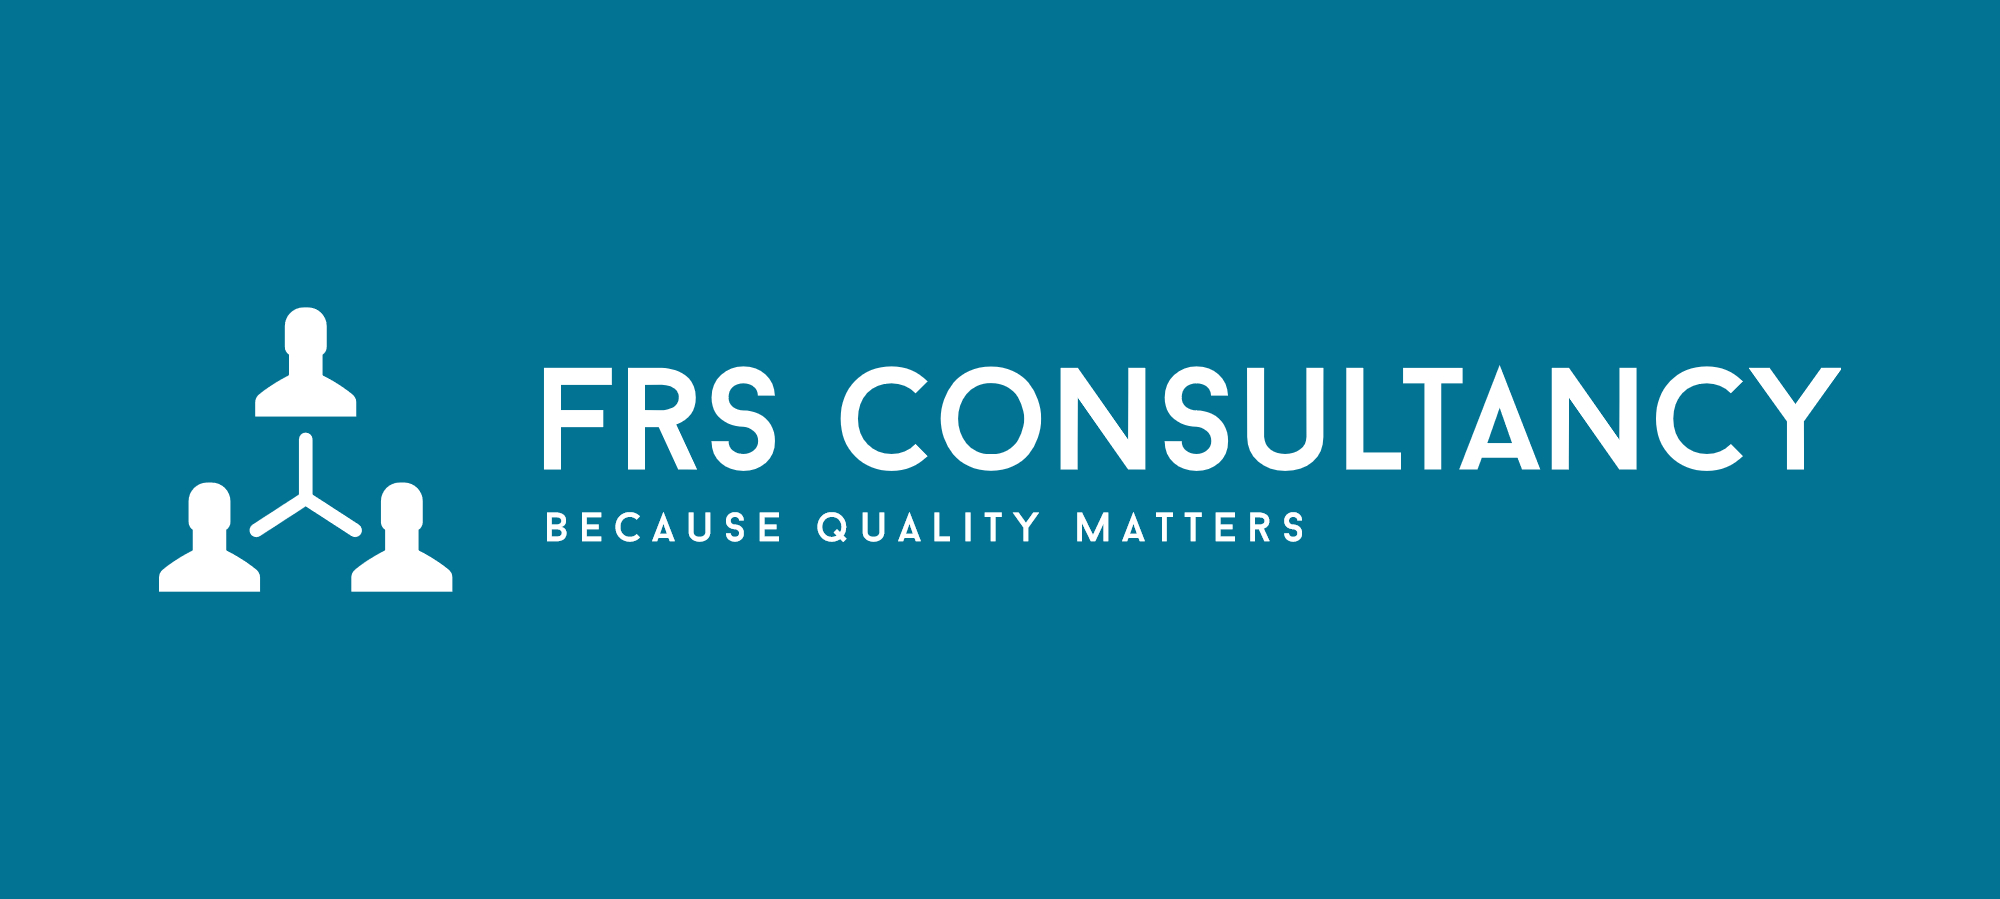 FRS Consultancy